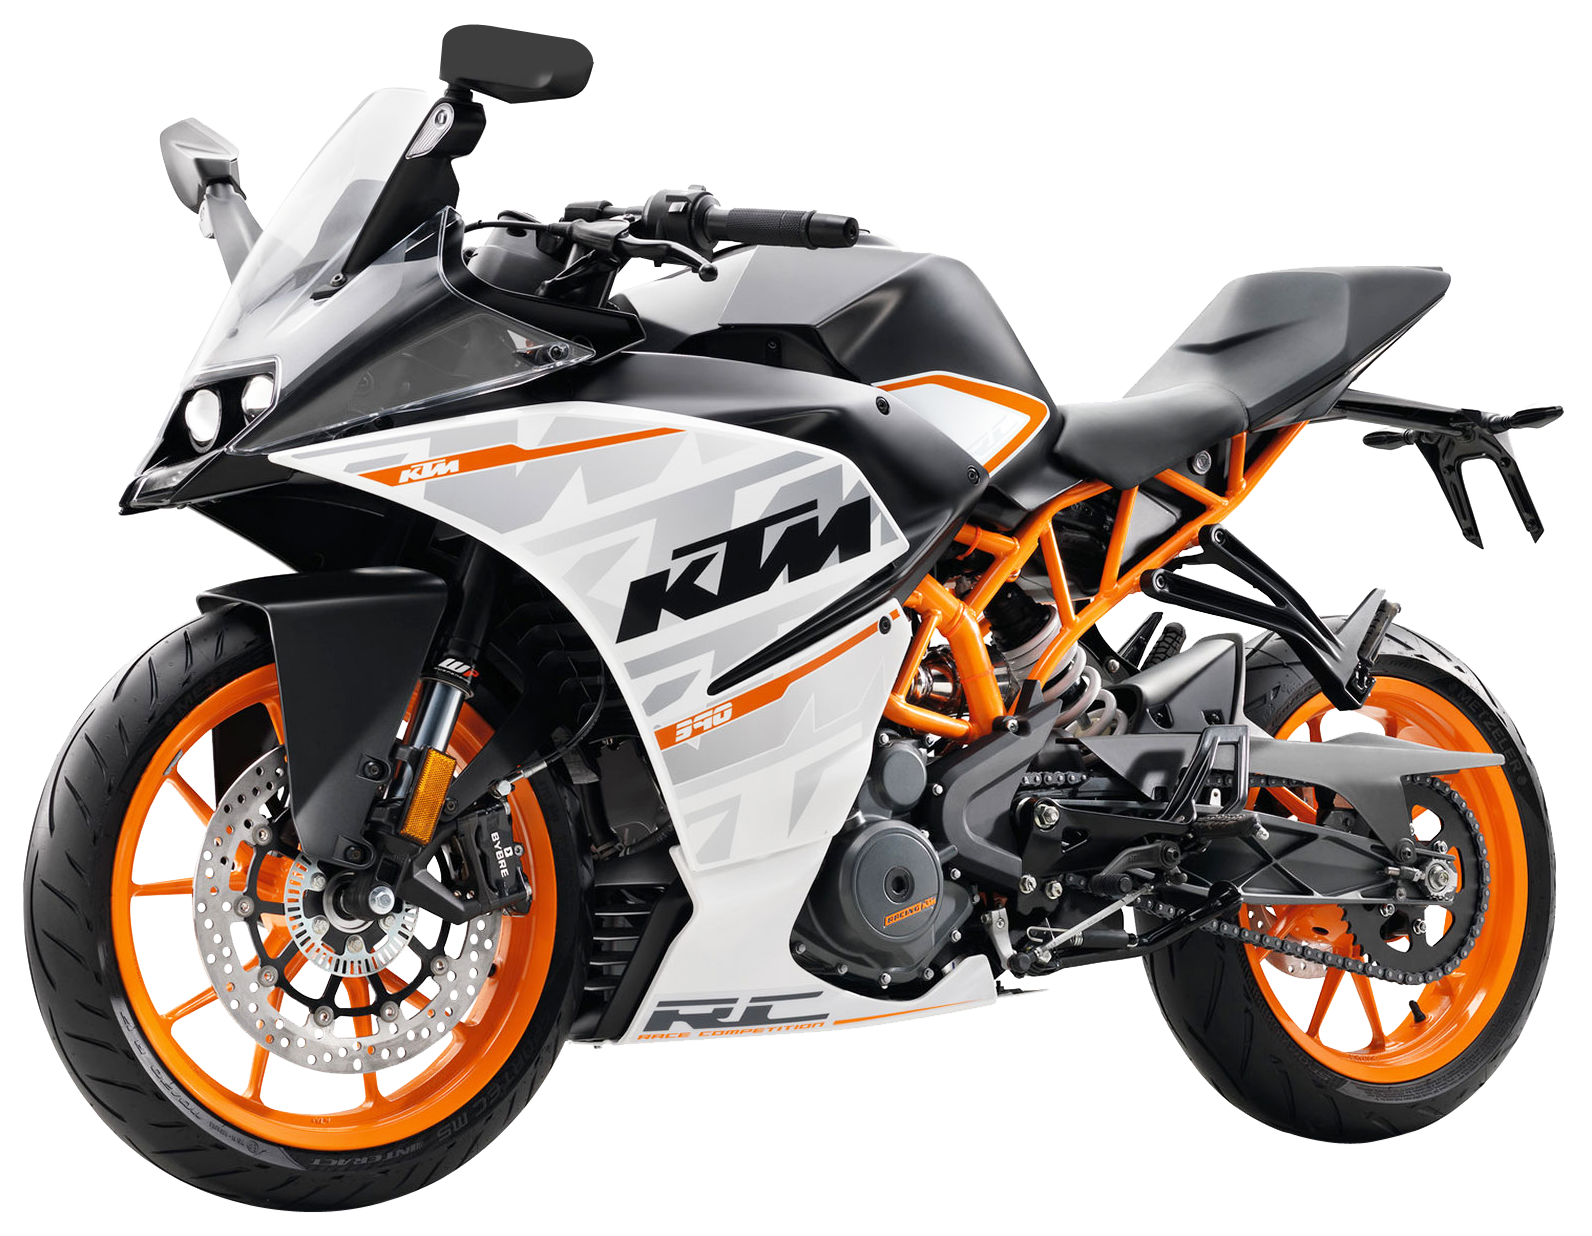 Ktm bike clipart for photoshop graphic free PNG HD Bike Transparent HD Bike.PNG Images. | PlusPNG graphic free